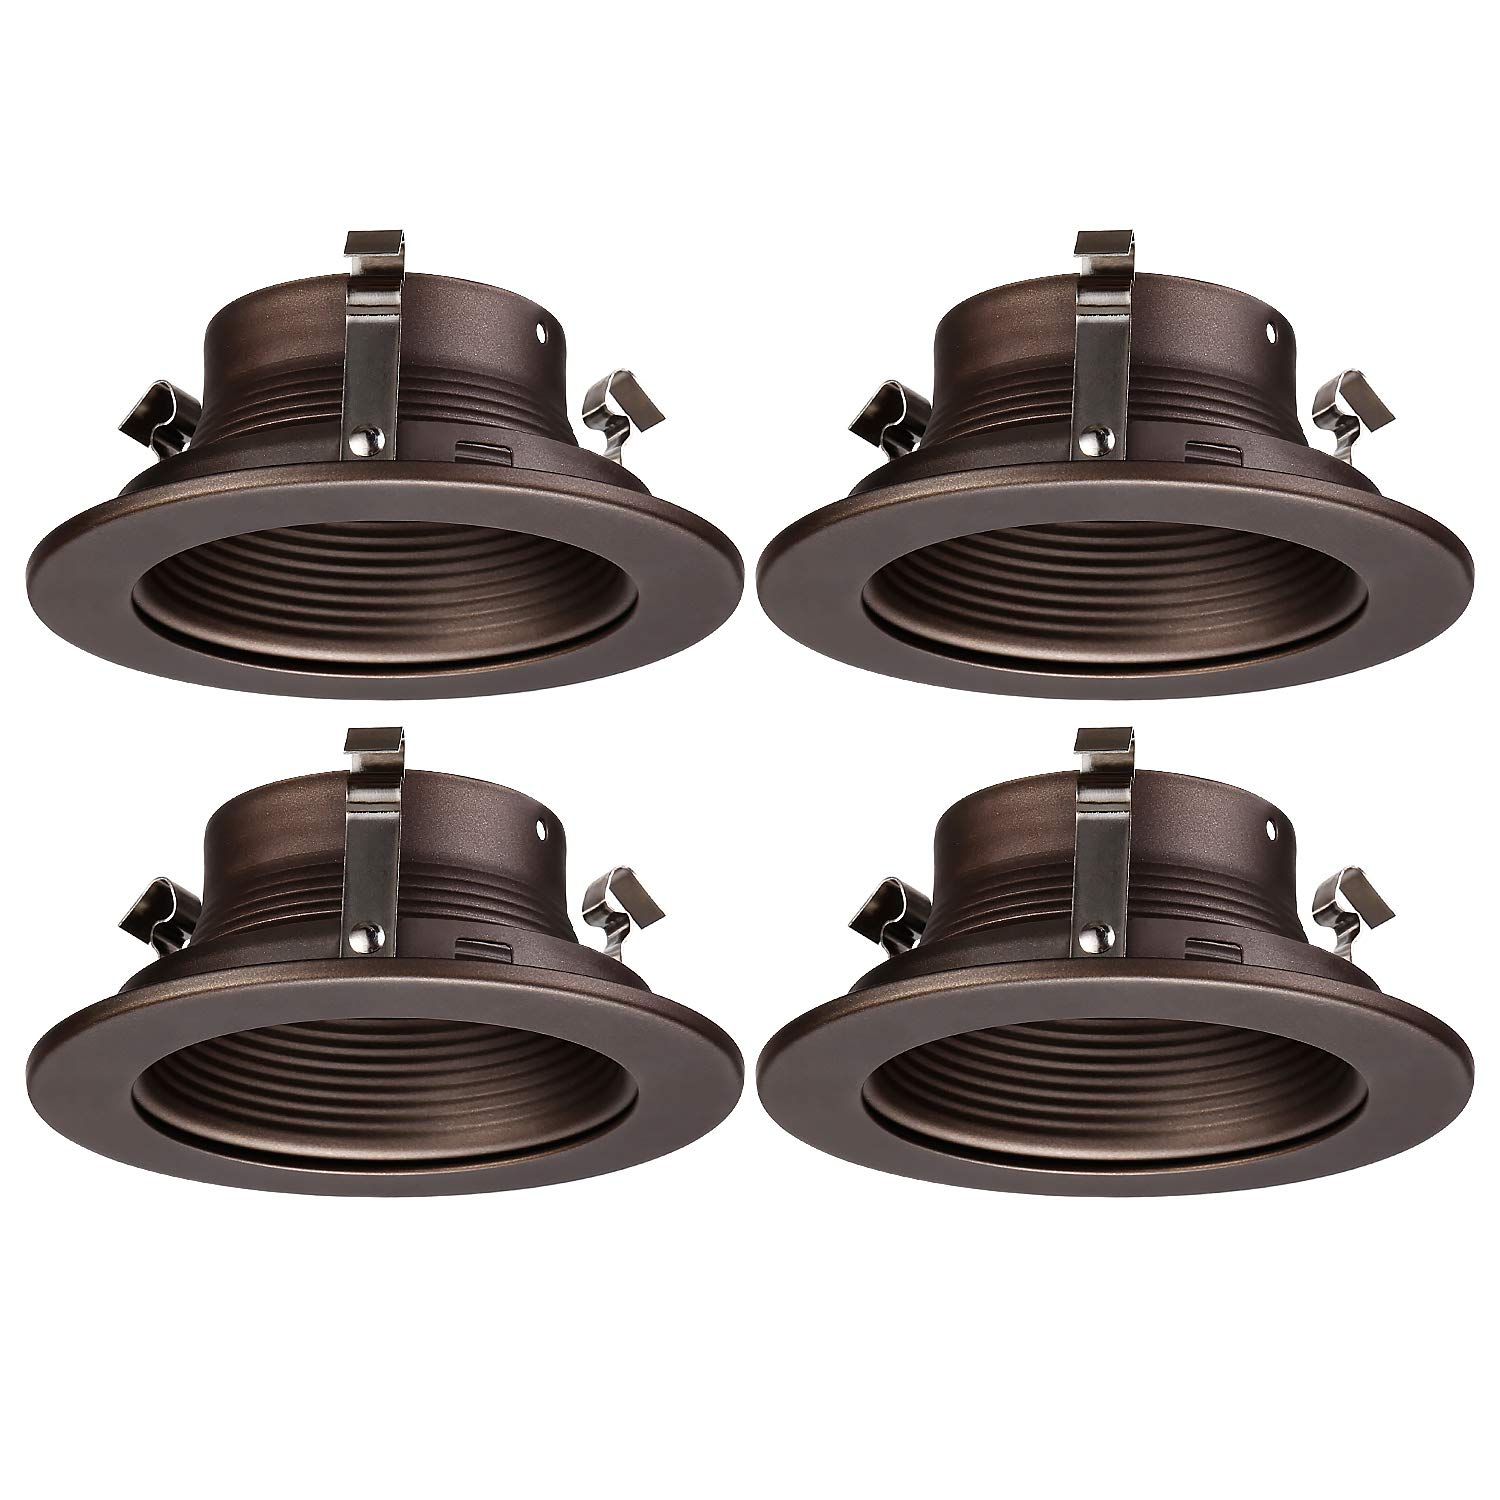 """TORCHSTAR 4 Inches Recessed Can Light Trim, Oil Rubbed Bronze Metal Step Baffle Trim, for PAR20, R20 Light Bulbs, for 4"""" Recessed Cans, Halo/Juno Remodel Recessed Housing, Pack of 4"""